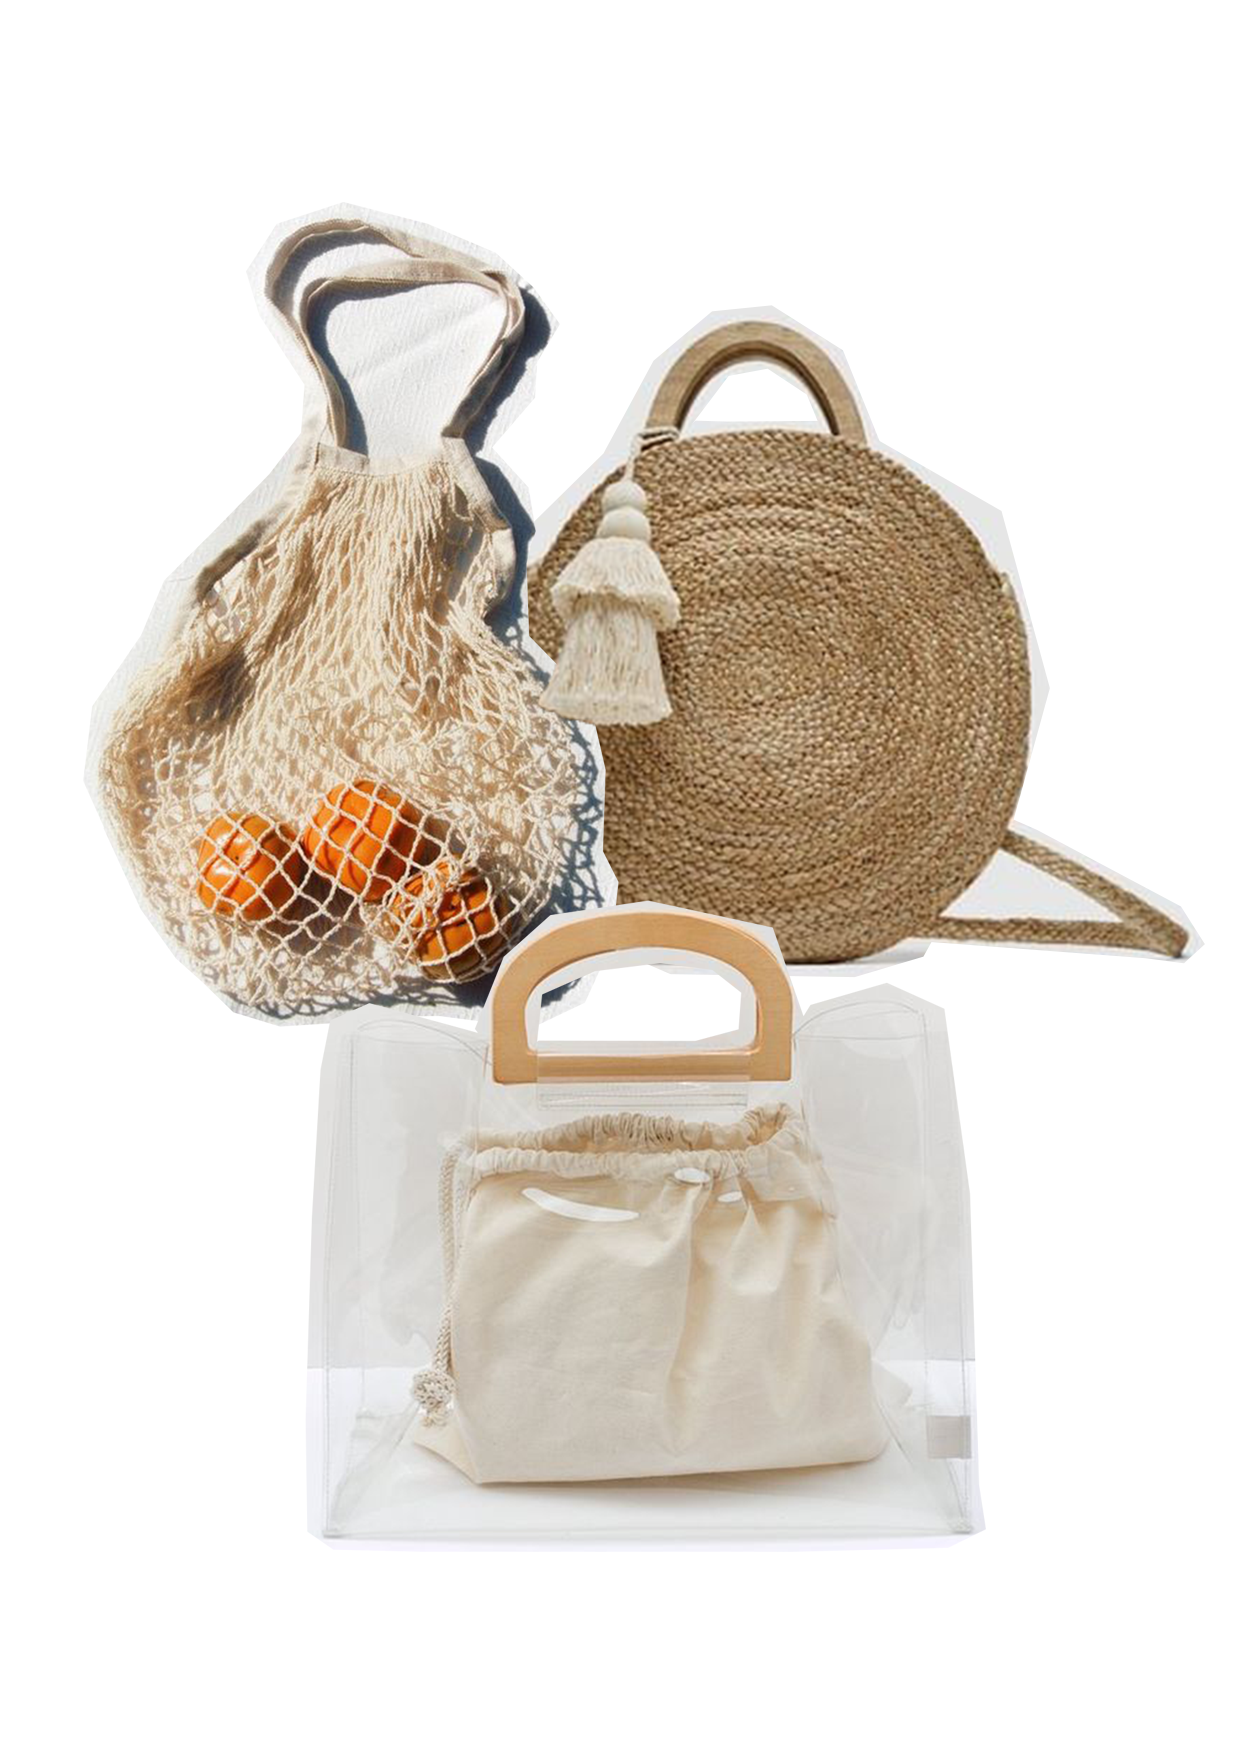 Beach Chic - Let's start with summer arm candy! I've realised recently that the smaller the bag the better, carrying less equals less stress and allows you to find what you need when you need it. Whether it's hand woven with straw, a little fruit/grocery net bag or your classic clear shopper. Pairing these items aren't as difficult as you think, you don't need to be a complete bohemian dream or a minimalist to wear any of these items. Just put on a pair of jeans, your favourite shirt and you're good to go!All items below are linked to buy online